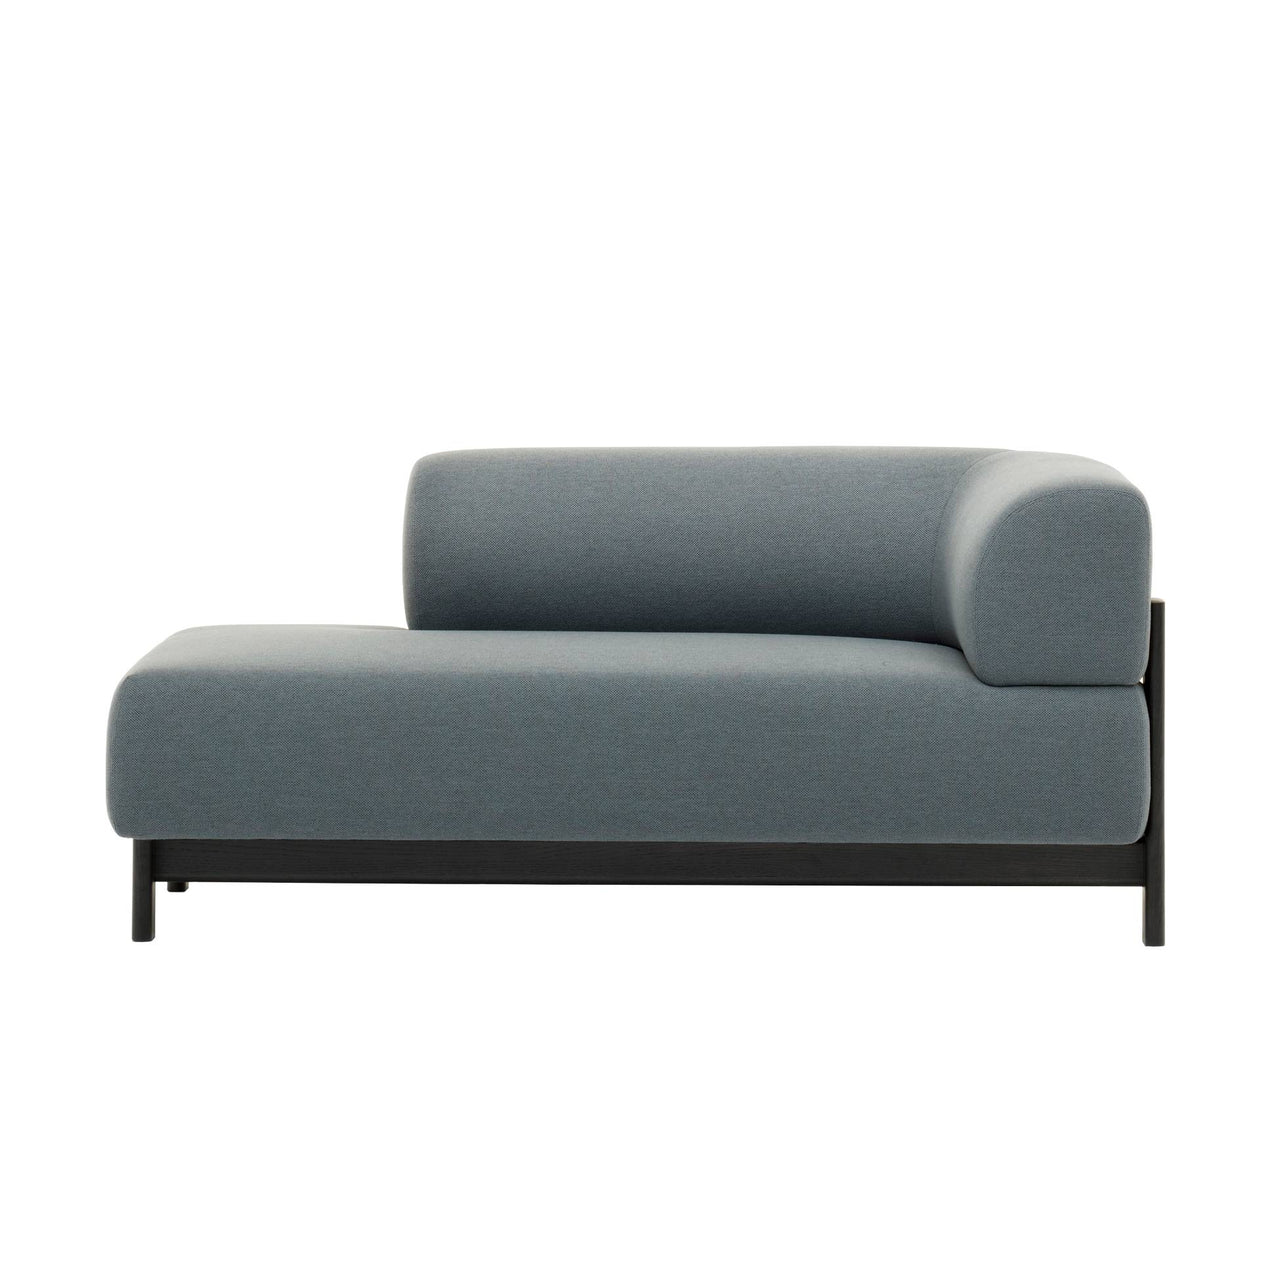 Elephant Chaise Lounge Buy Karimoku New Standard Online At A R